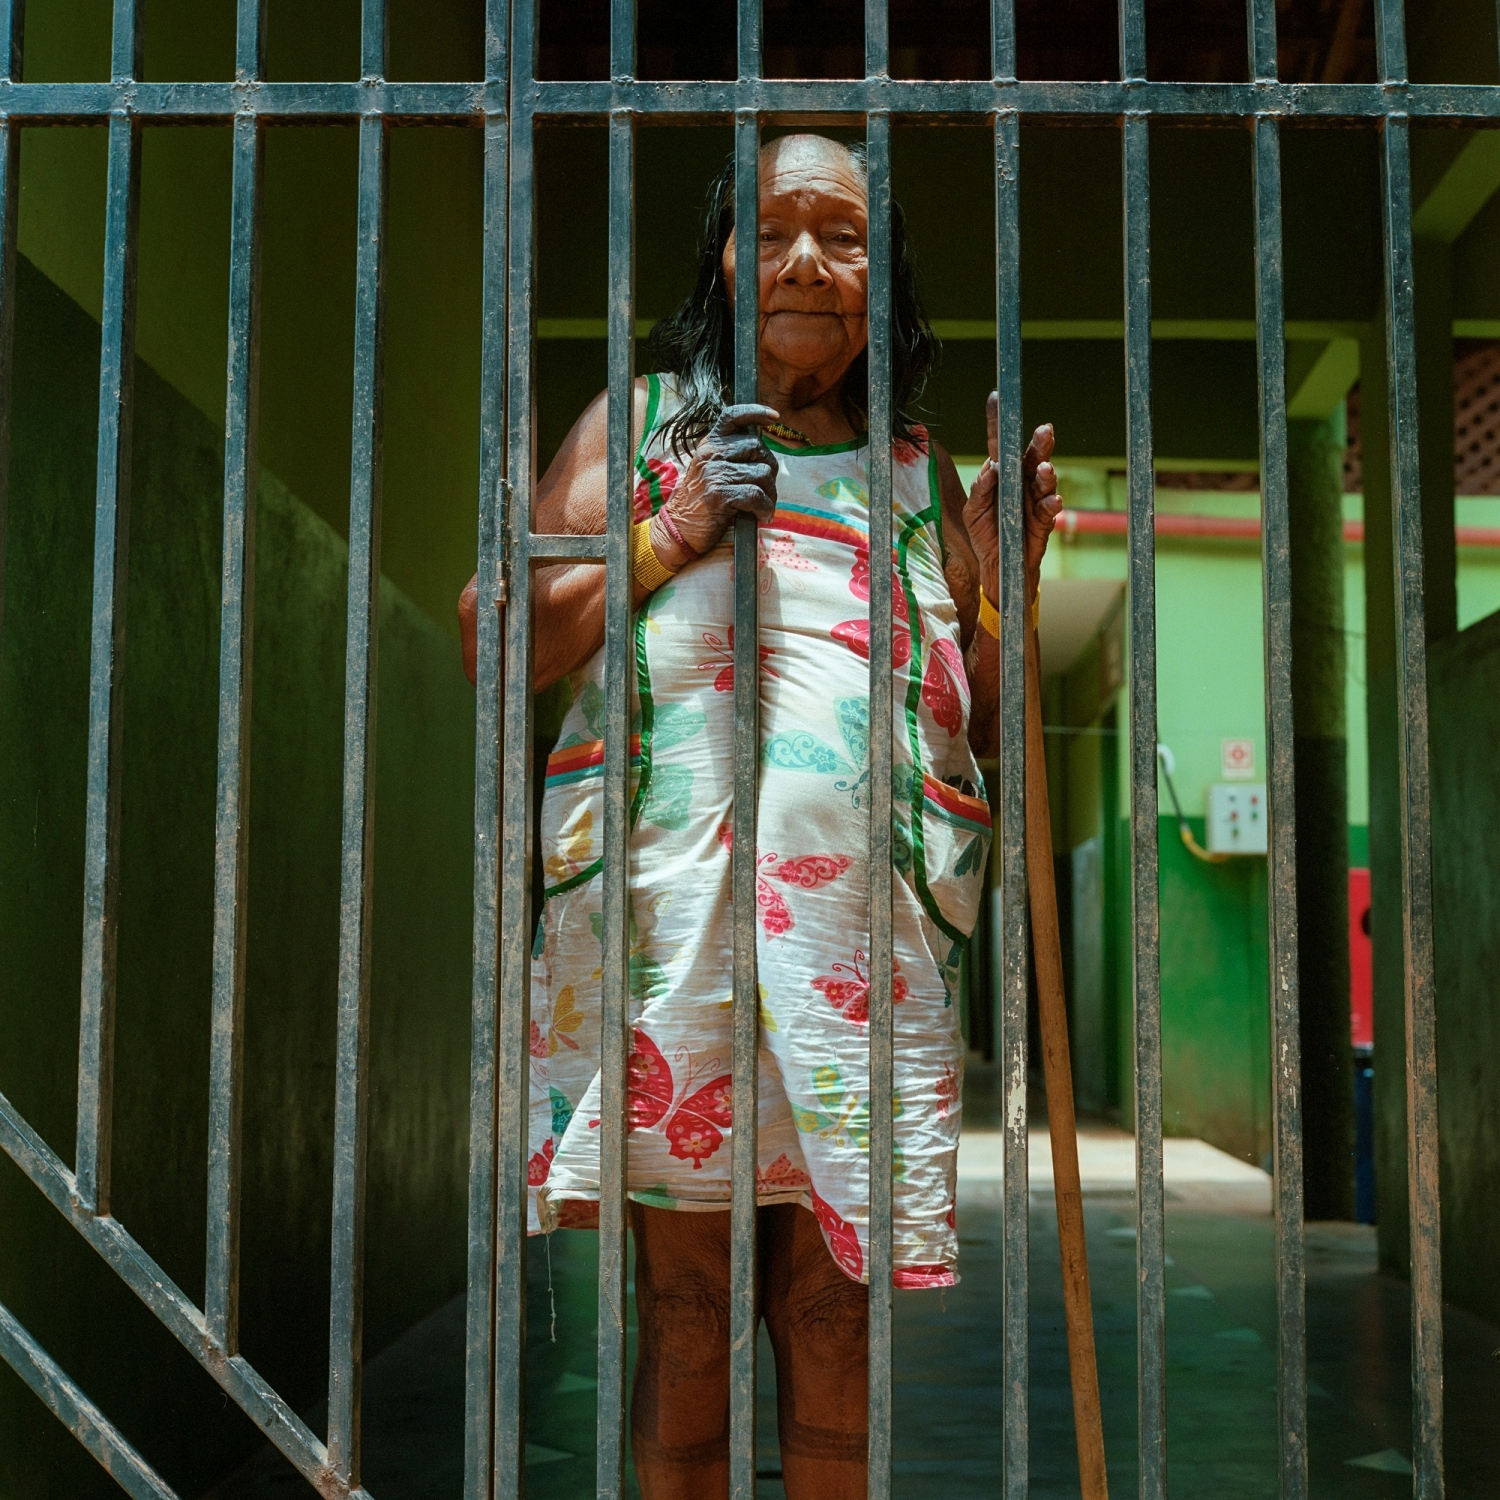 2016. Maria, a Xikrin Kayapo woman, stands in the gate of the Casa do Indios, a place where indigenous people can stay while visiting the city of Altamira. The Xikrin live along the Bacaja river, a tributary of the Xingu that has been severely impacted by the Belo Monte Dam. Illegal gold mining has also become an large problem on the upper Bacaja because of the lower water levels since the dams completion.  /Aaron Vincent Elkaim